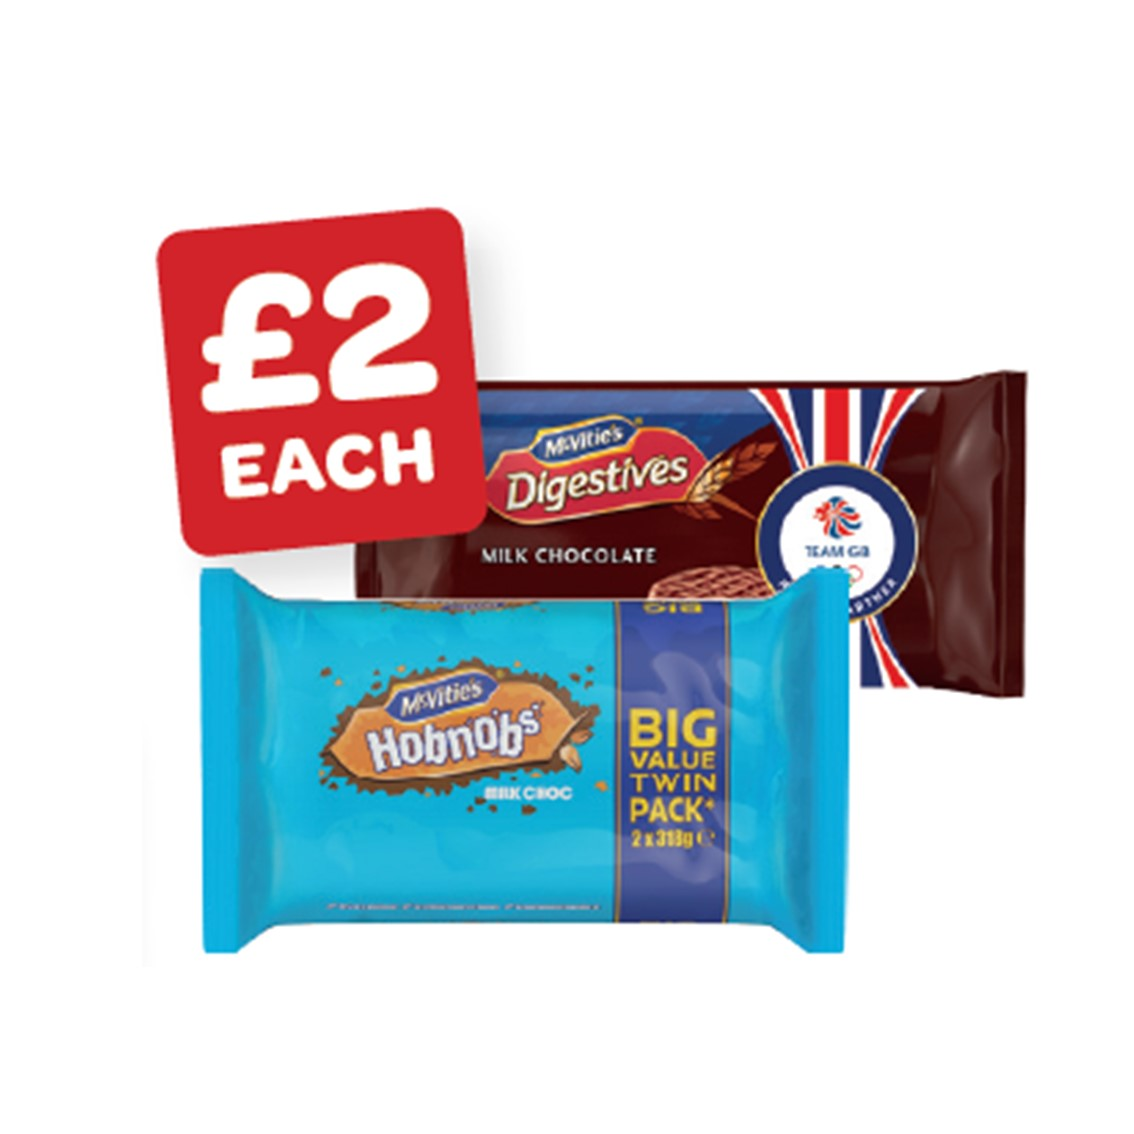 McVitie's Choc Digestives / Choc Hob Nobs Twin Pack